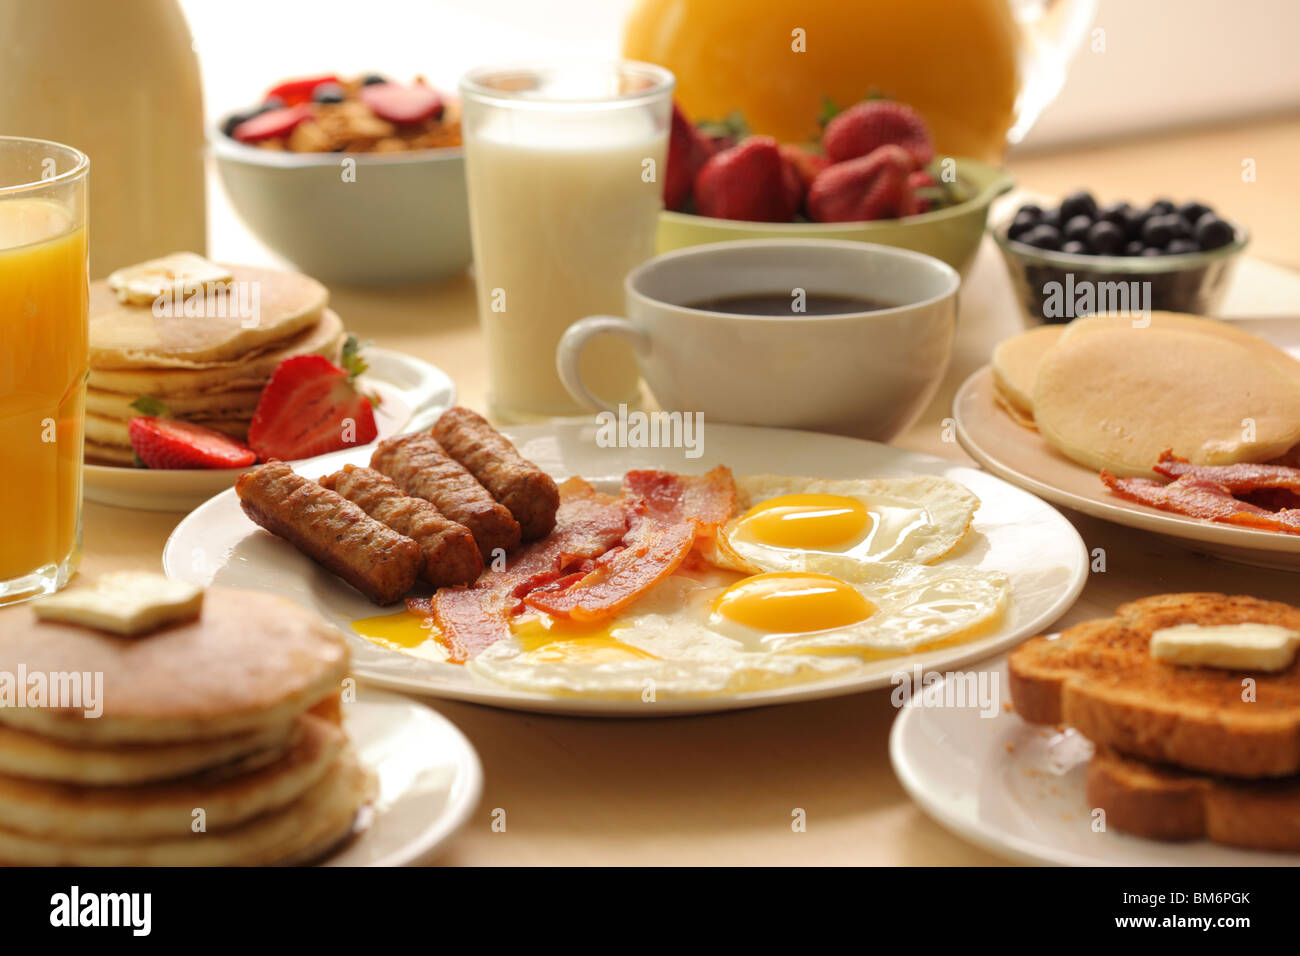 Breakfast, sausage, bacon, eggs, toast, coffee, cereal, fruit, toast and pancakes - Stock Image